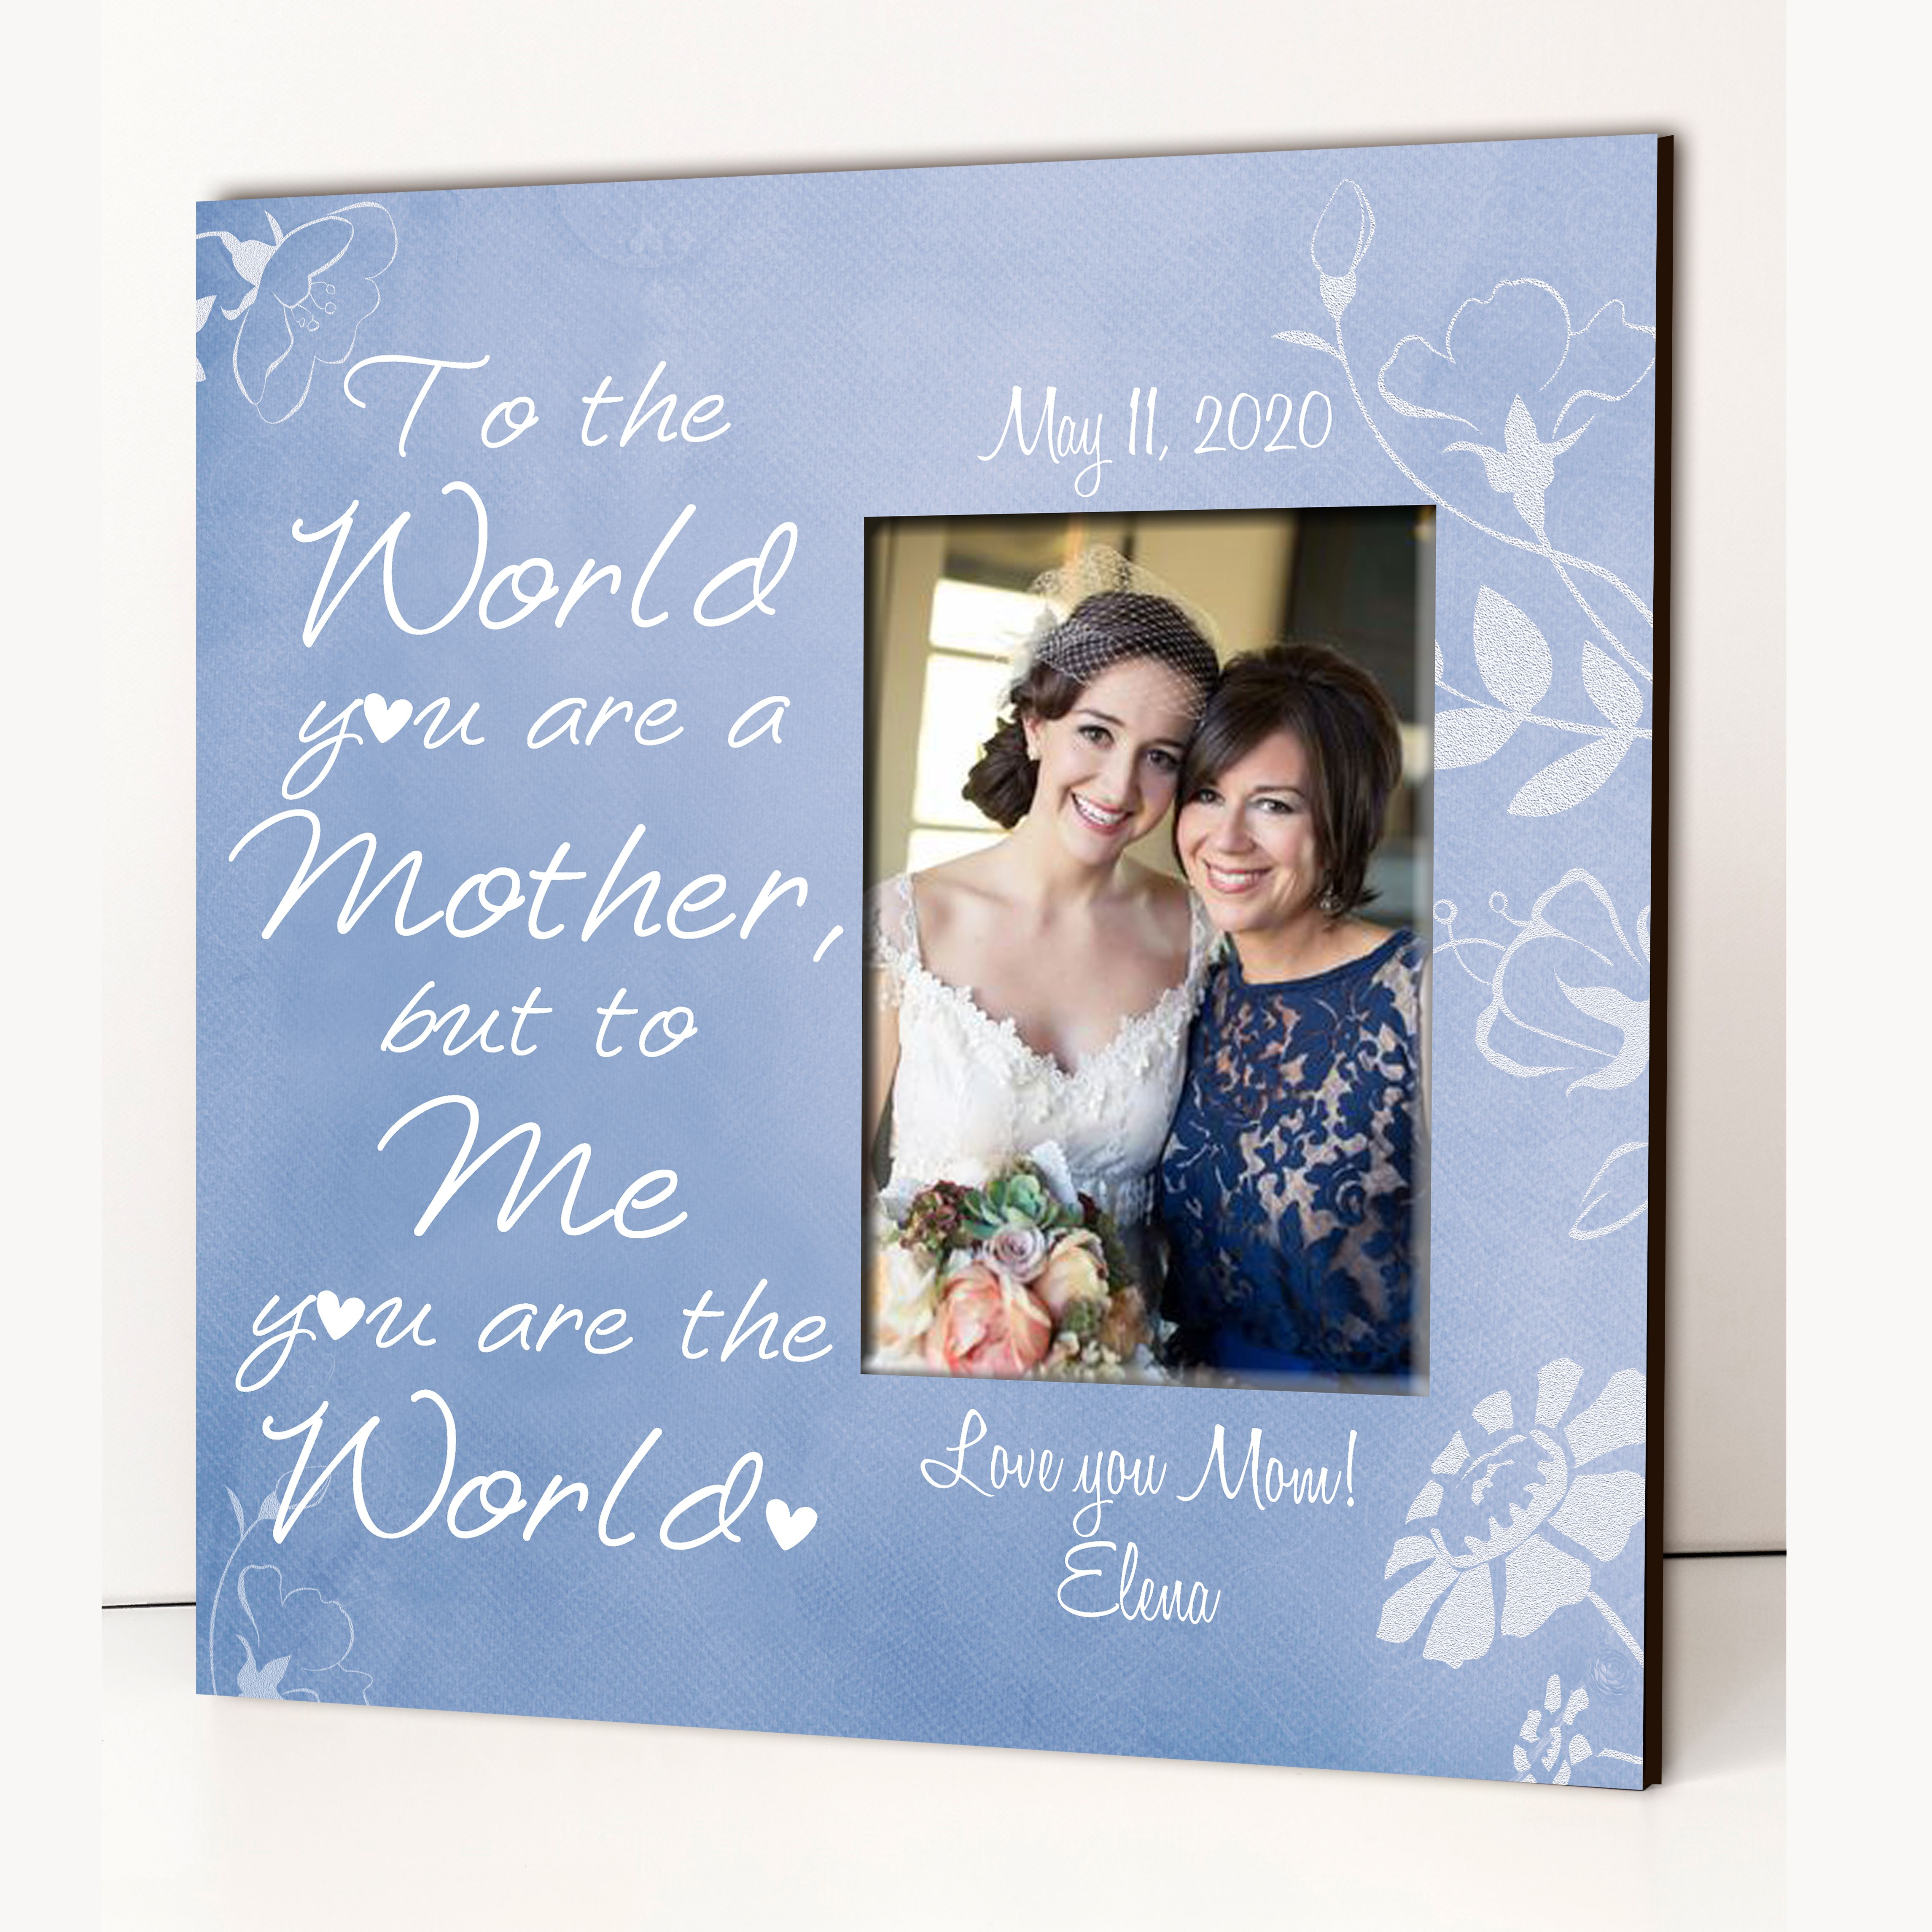 76 Personalized Picture Frames Ideas Personalized Picture Frames Grandparents Day Gifts Sympathy Gifts